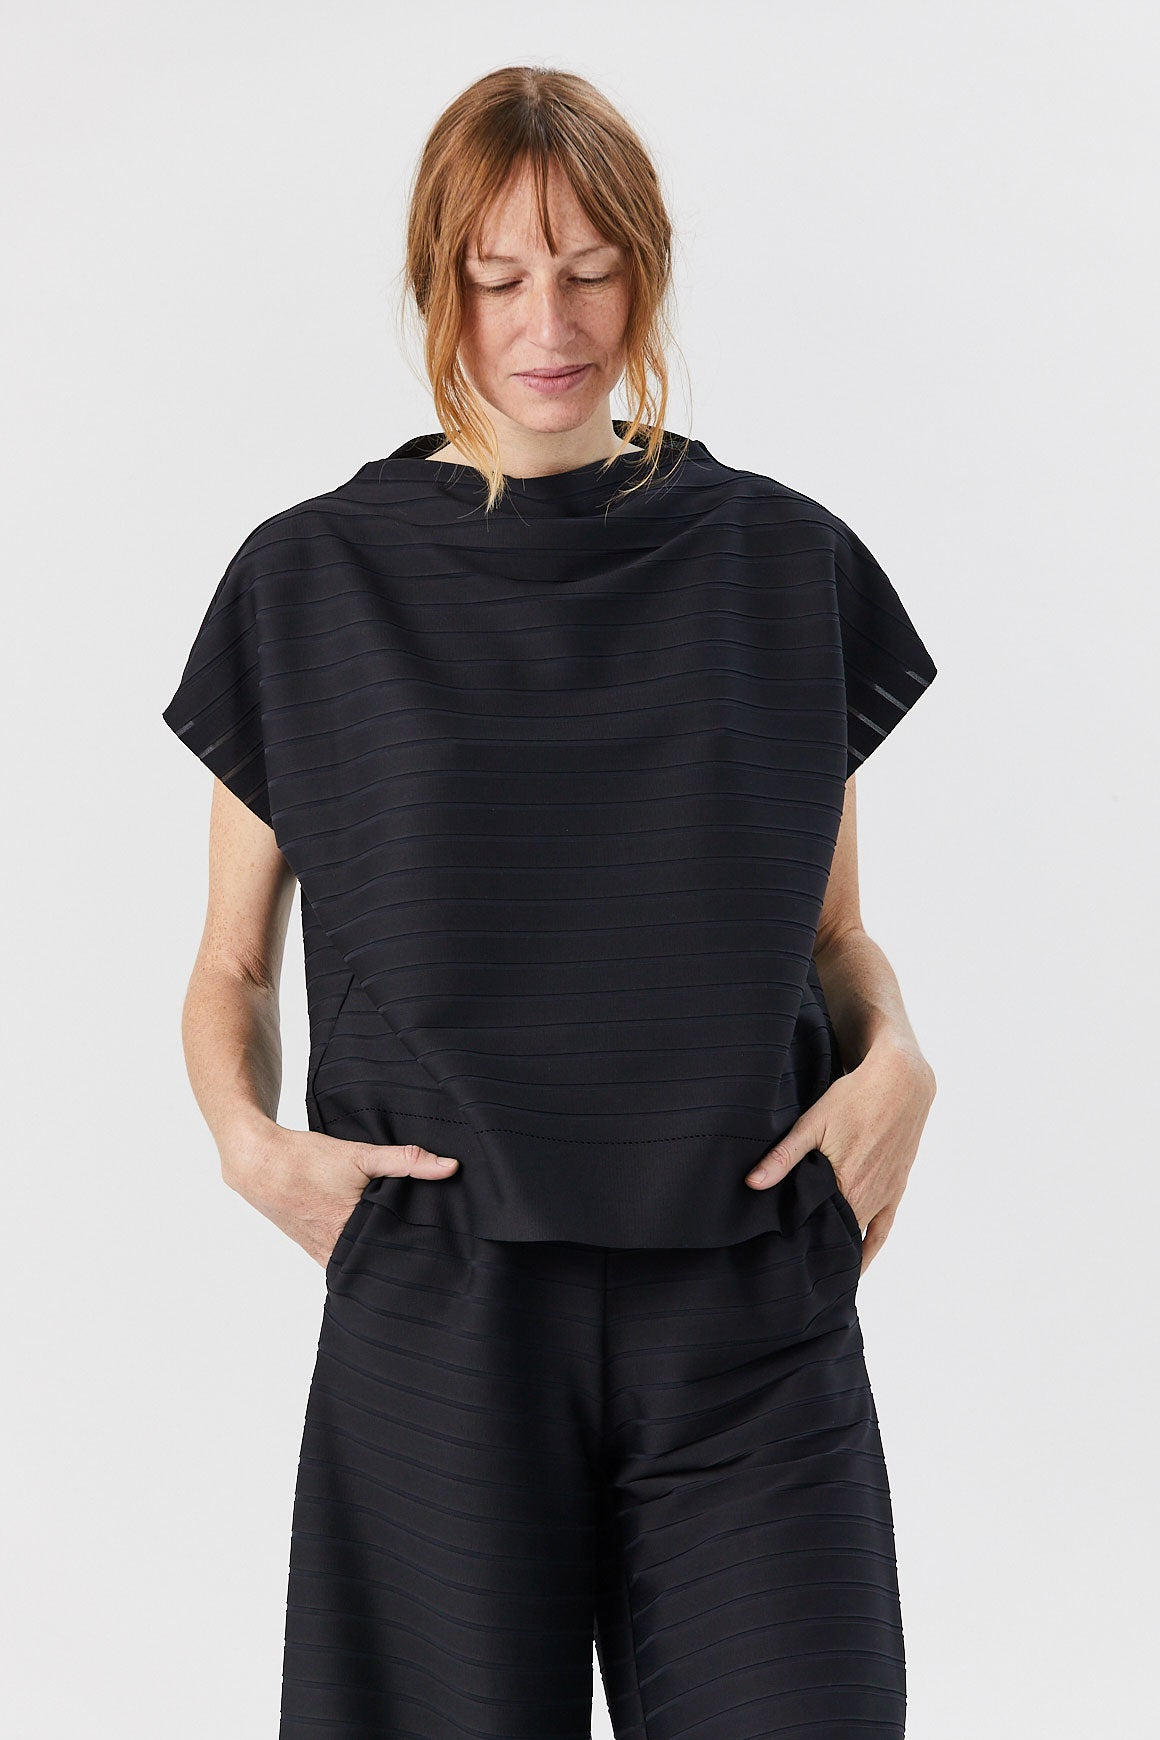 Woody Ripple Top, Black